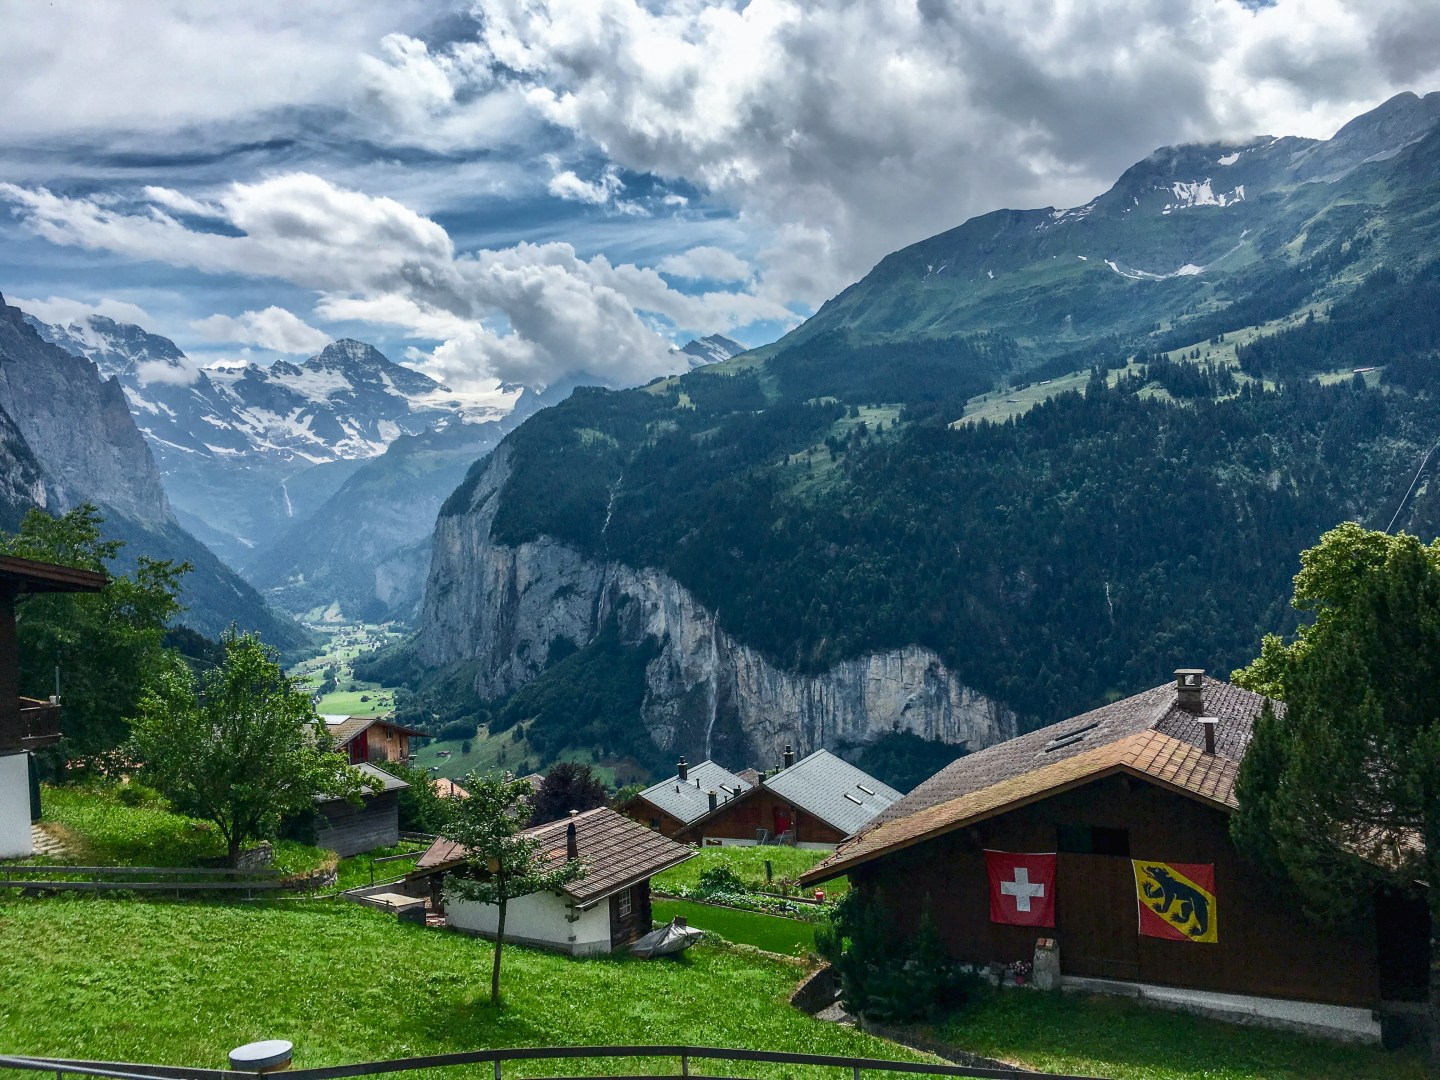 Backpacking in the Swiss Alps: Wengen and Lauterbrunnen